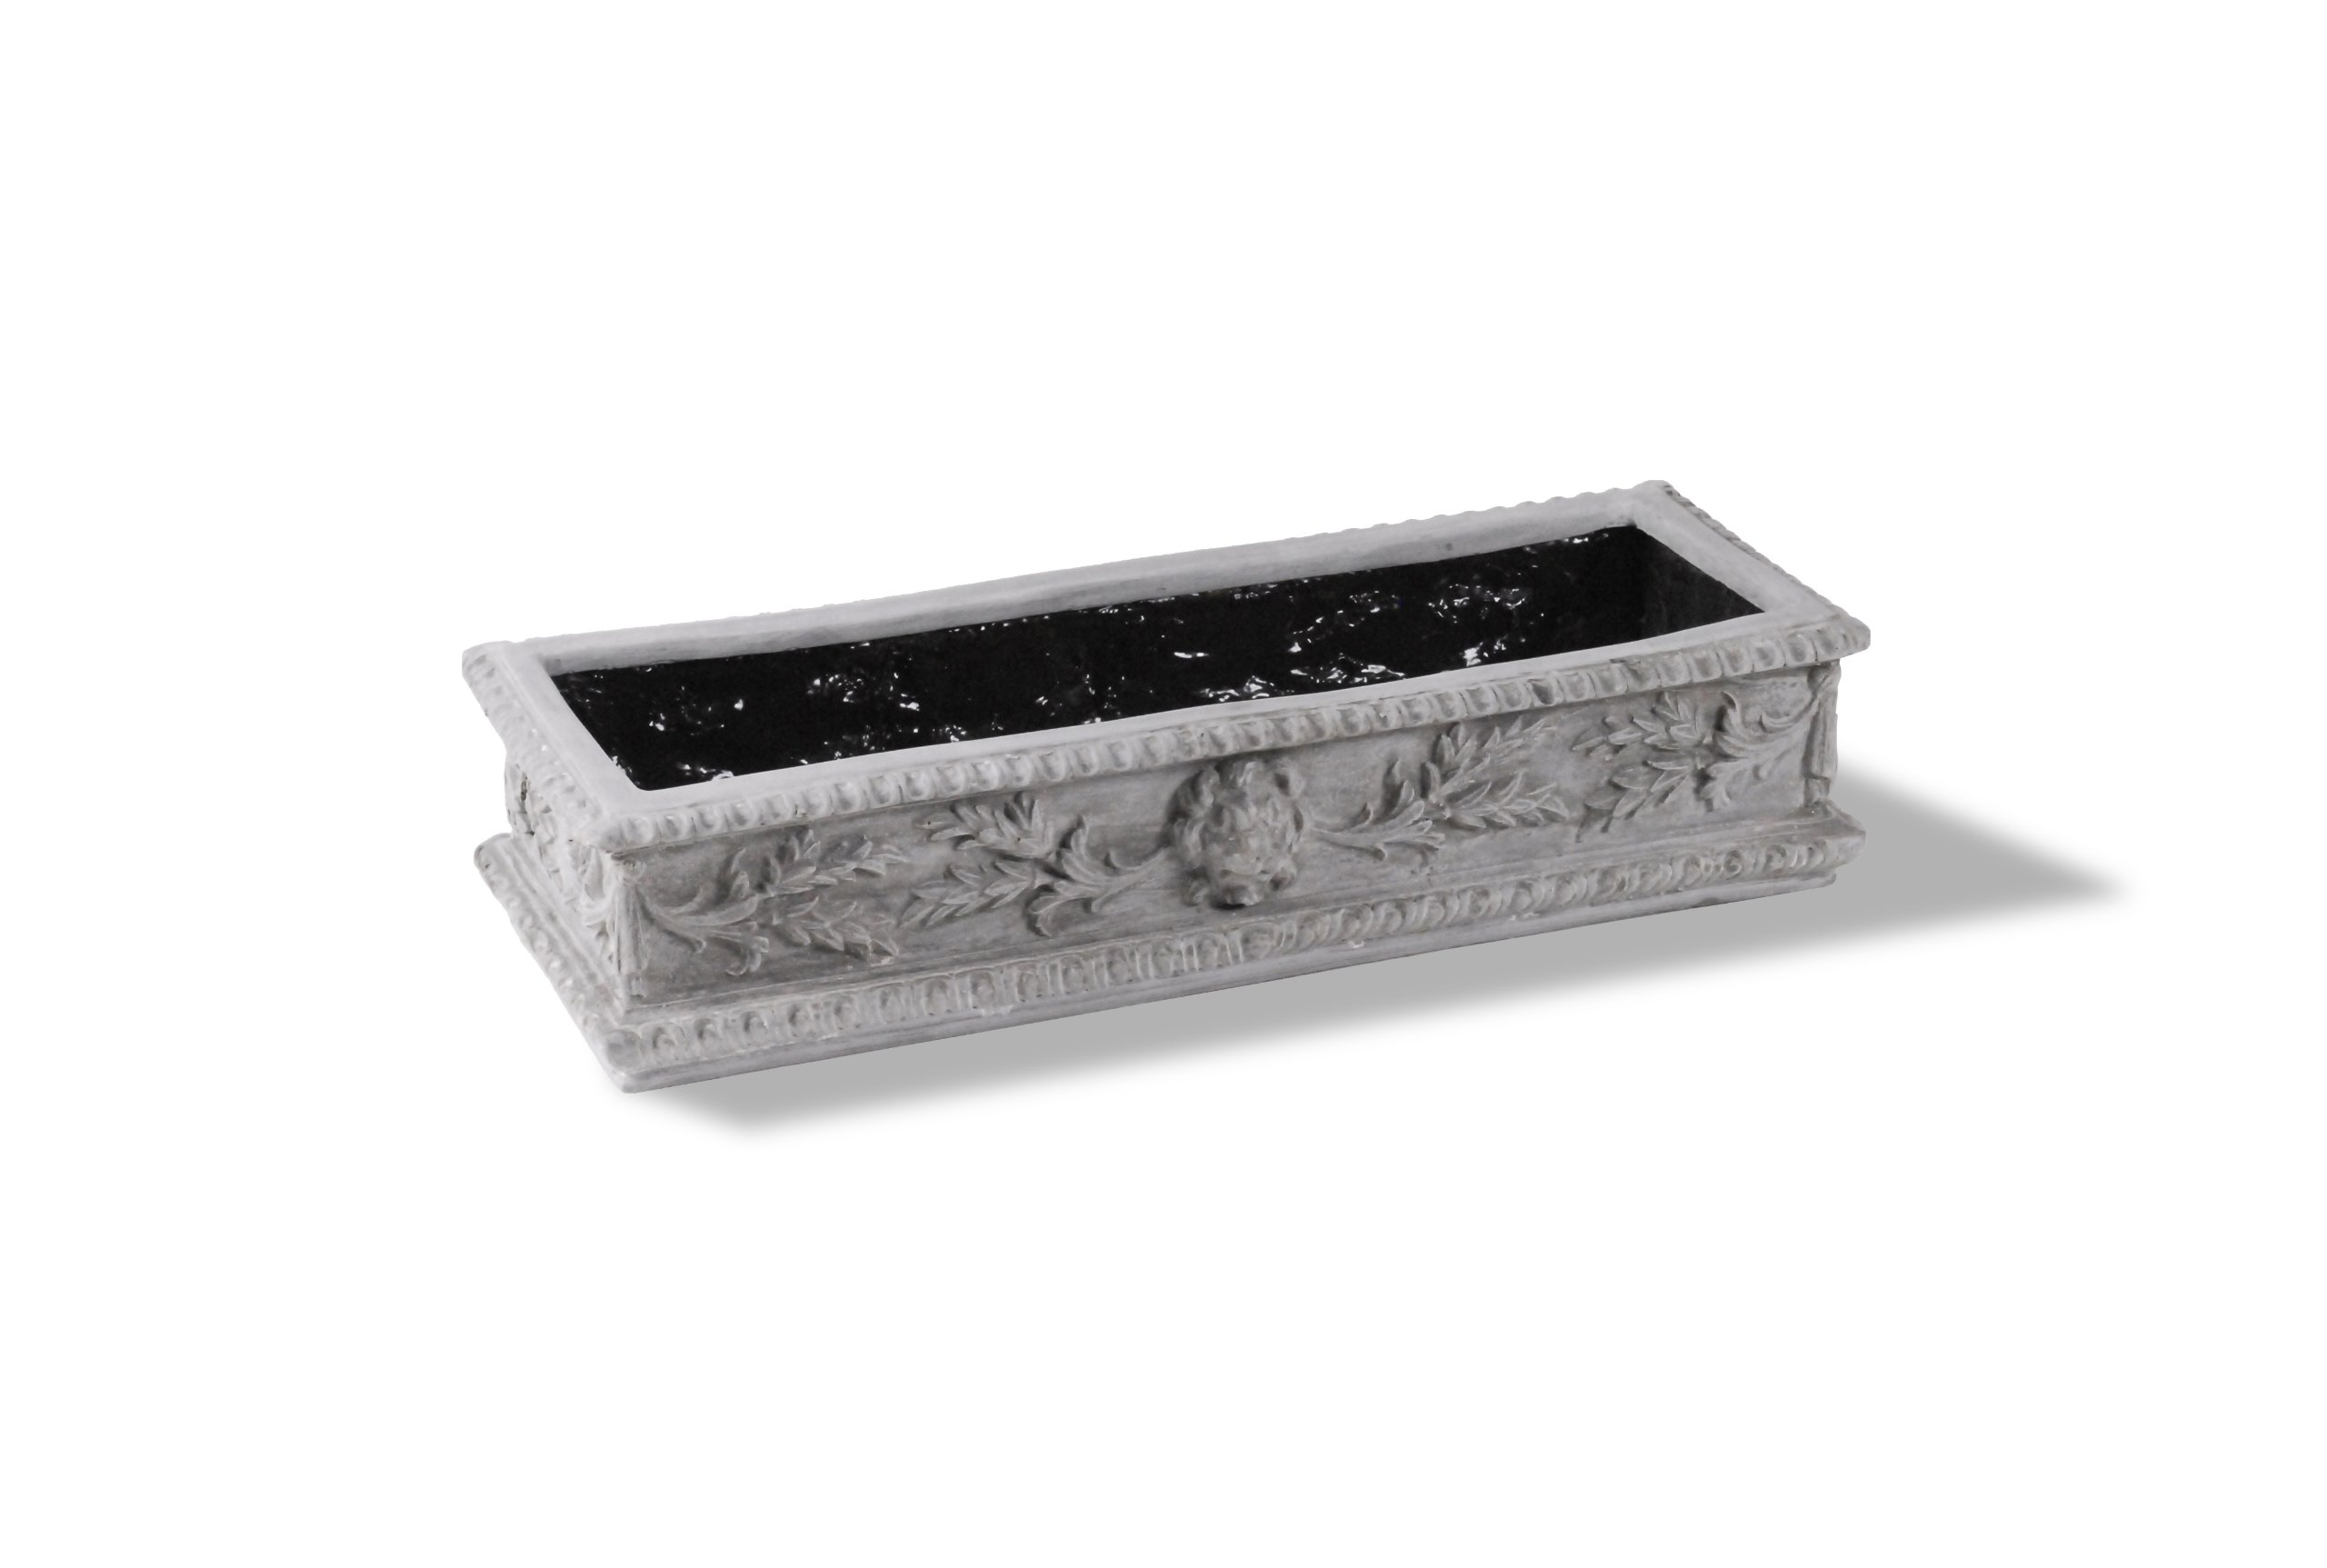 Amedeo Design ResinStone 2509-13G Lion Window Box, 38 by 14 by 8.5-Inch, Lead Gray by Amedeo Design